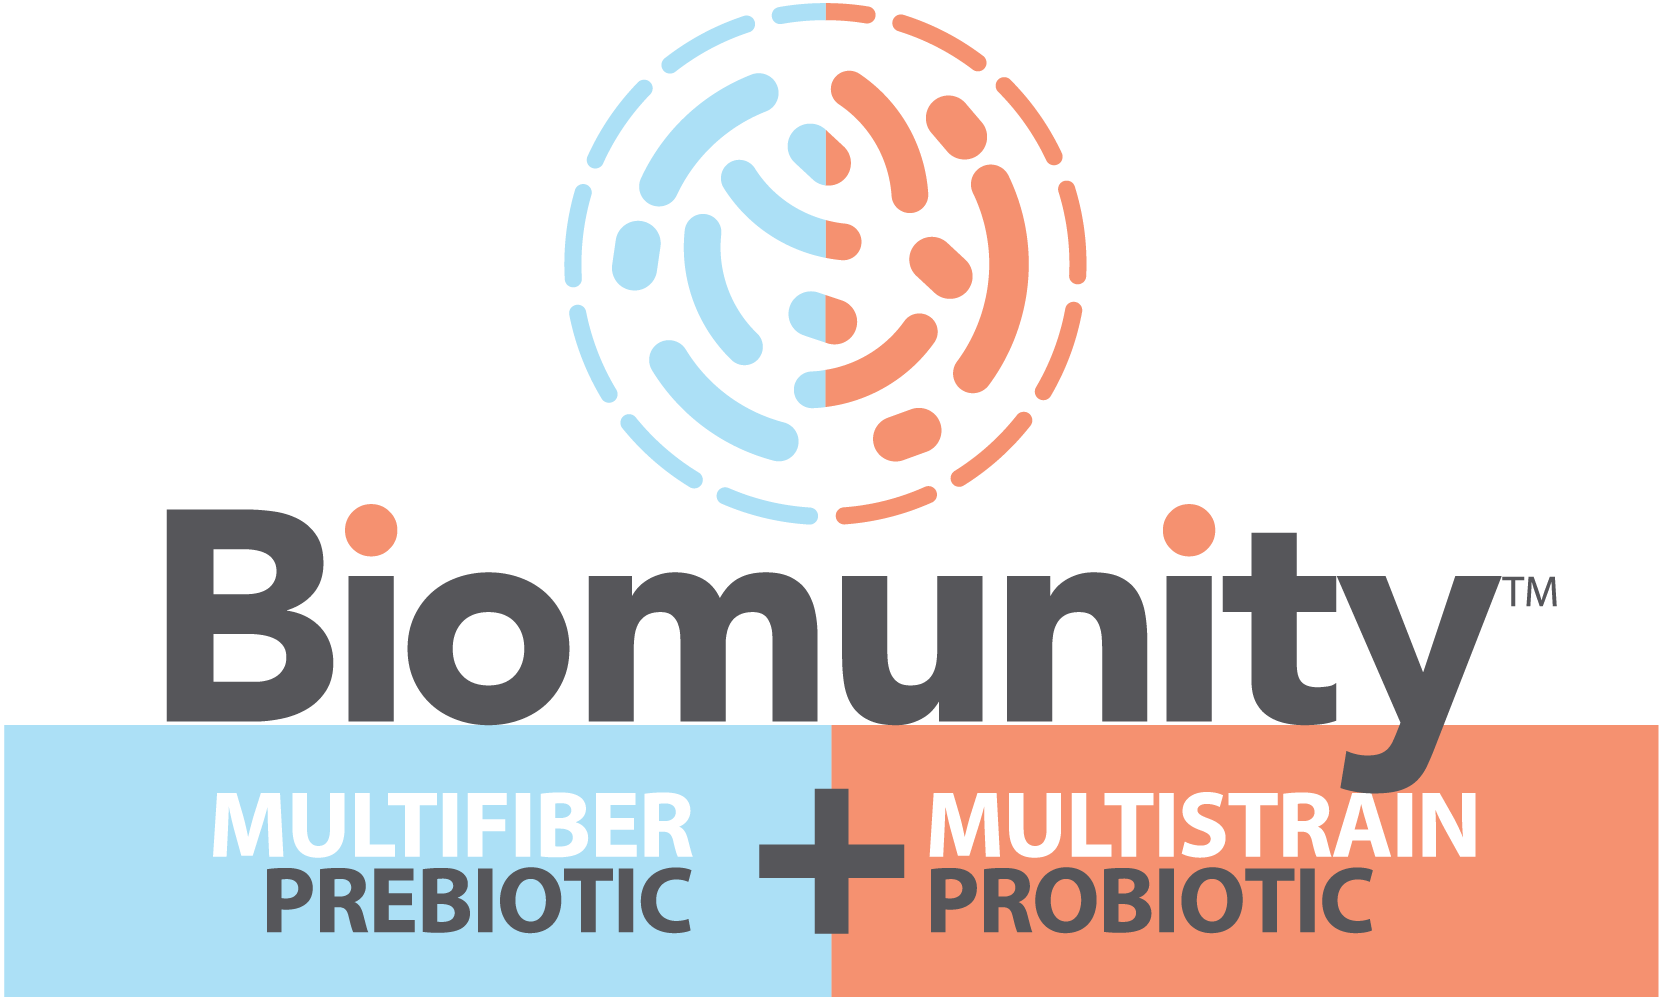 Biomunity™ - Contains 5 + 5 + 5